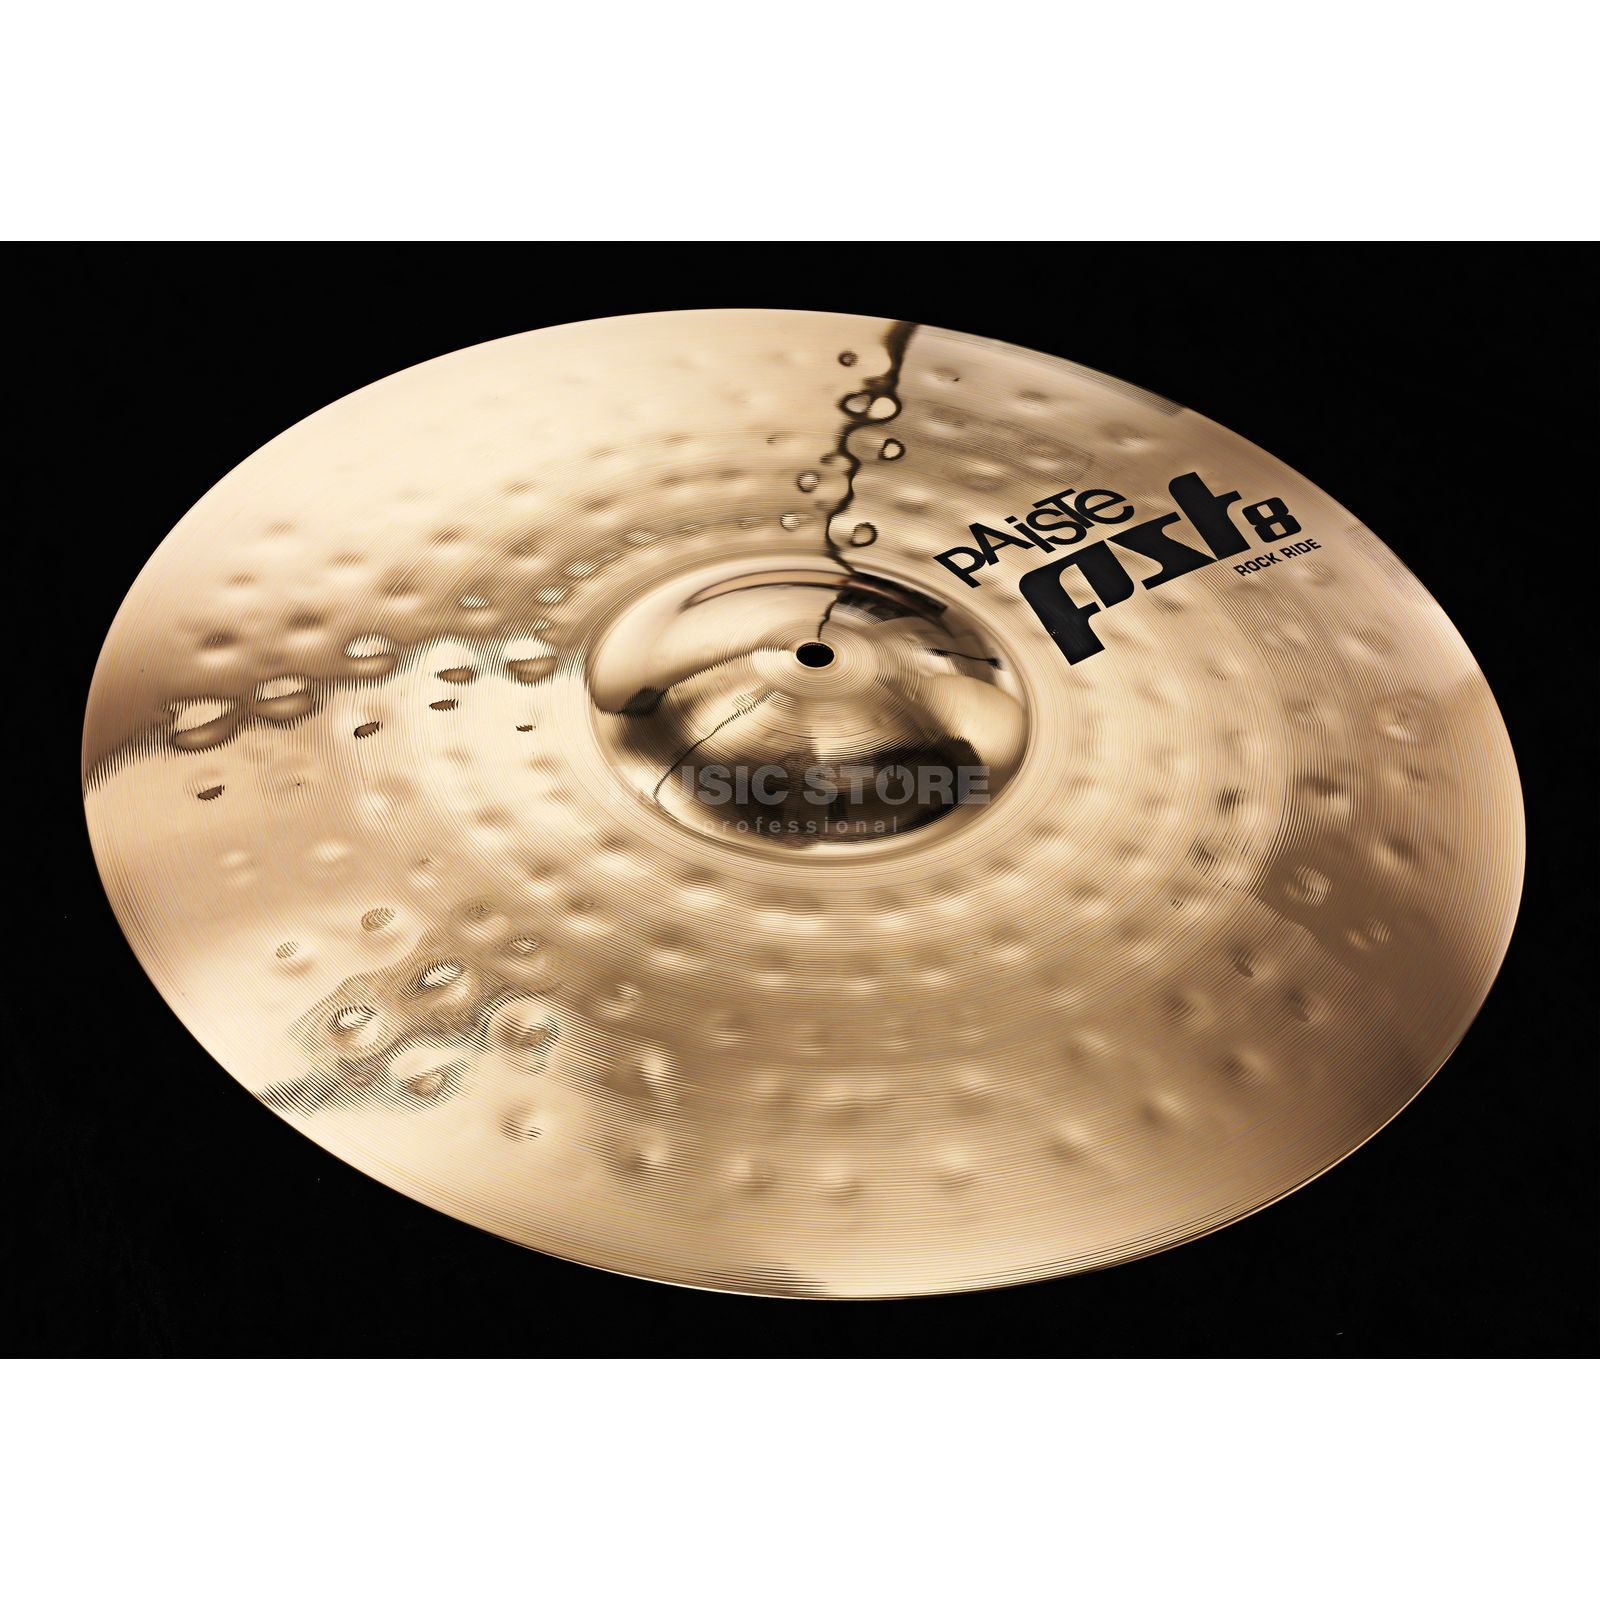 "Paiste PST8 Rock Ride 22"", Reflector Finish Изображение товара"